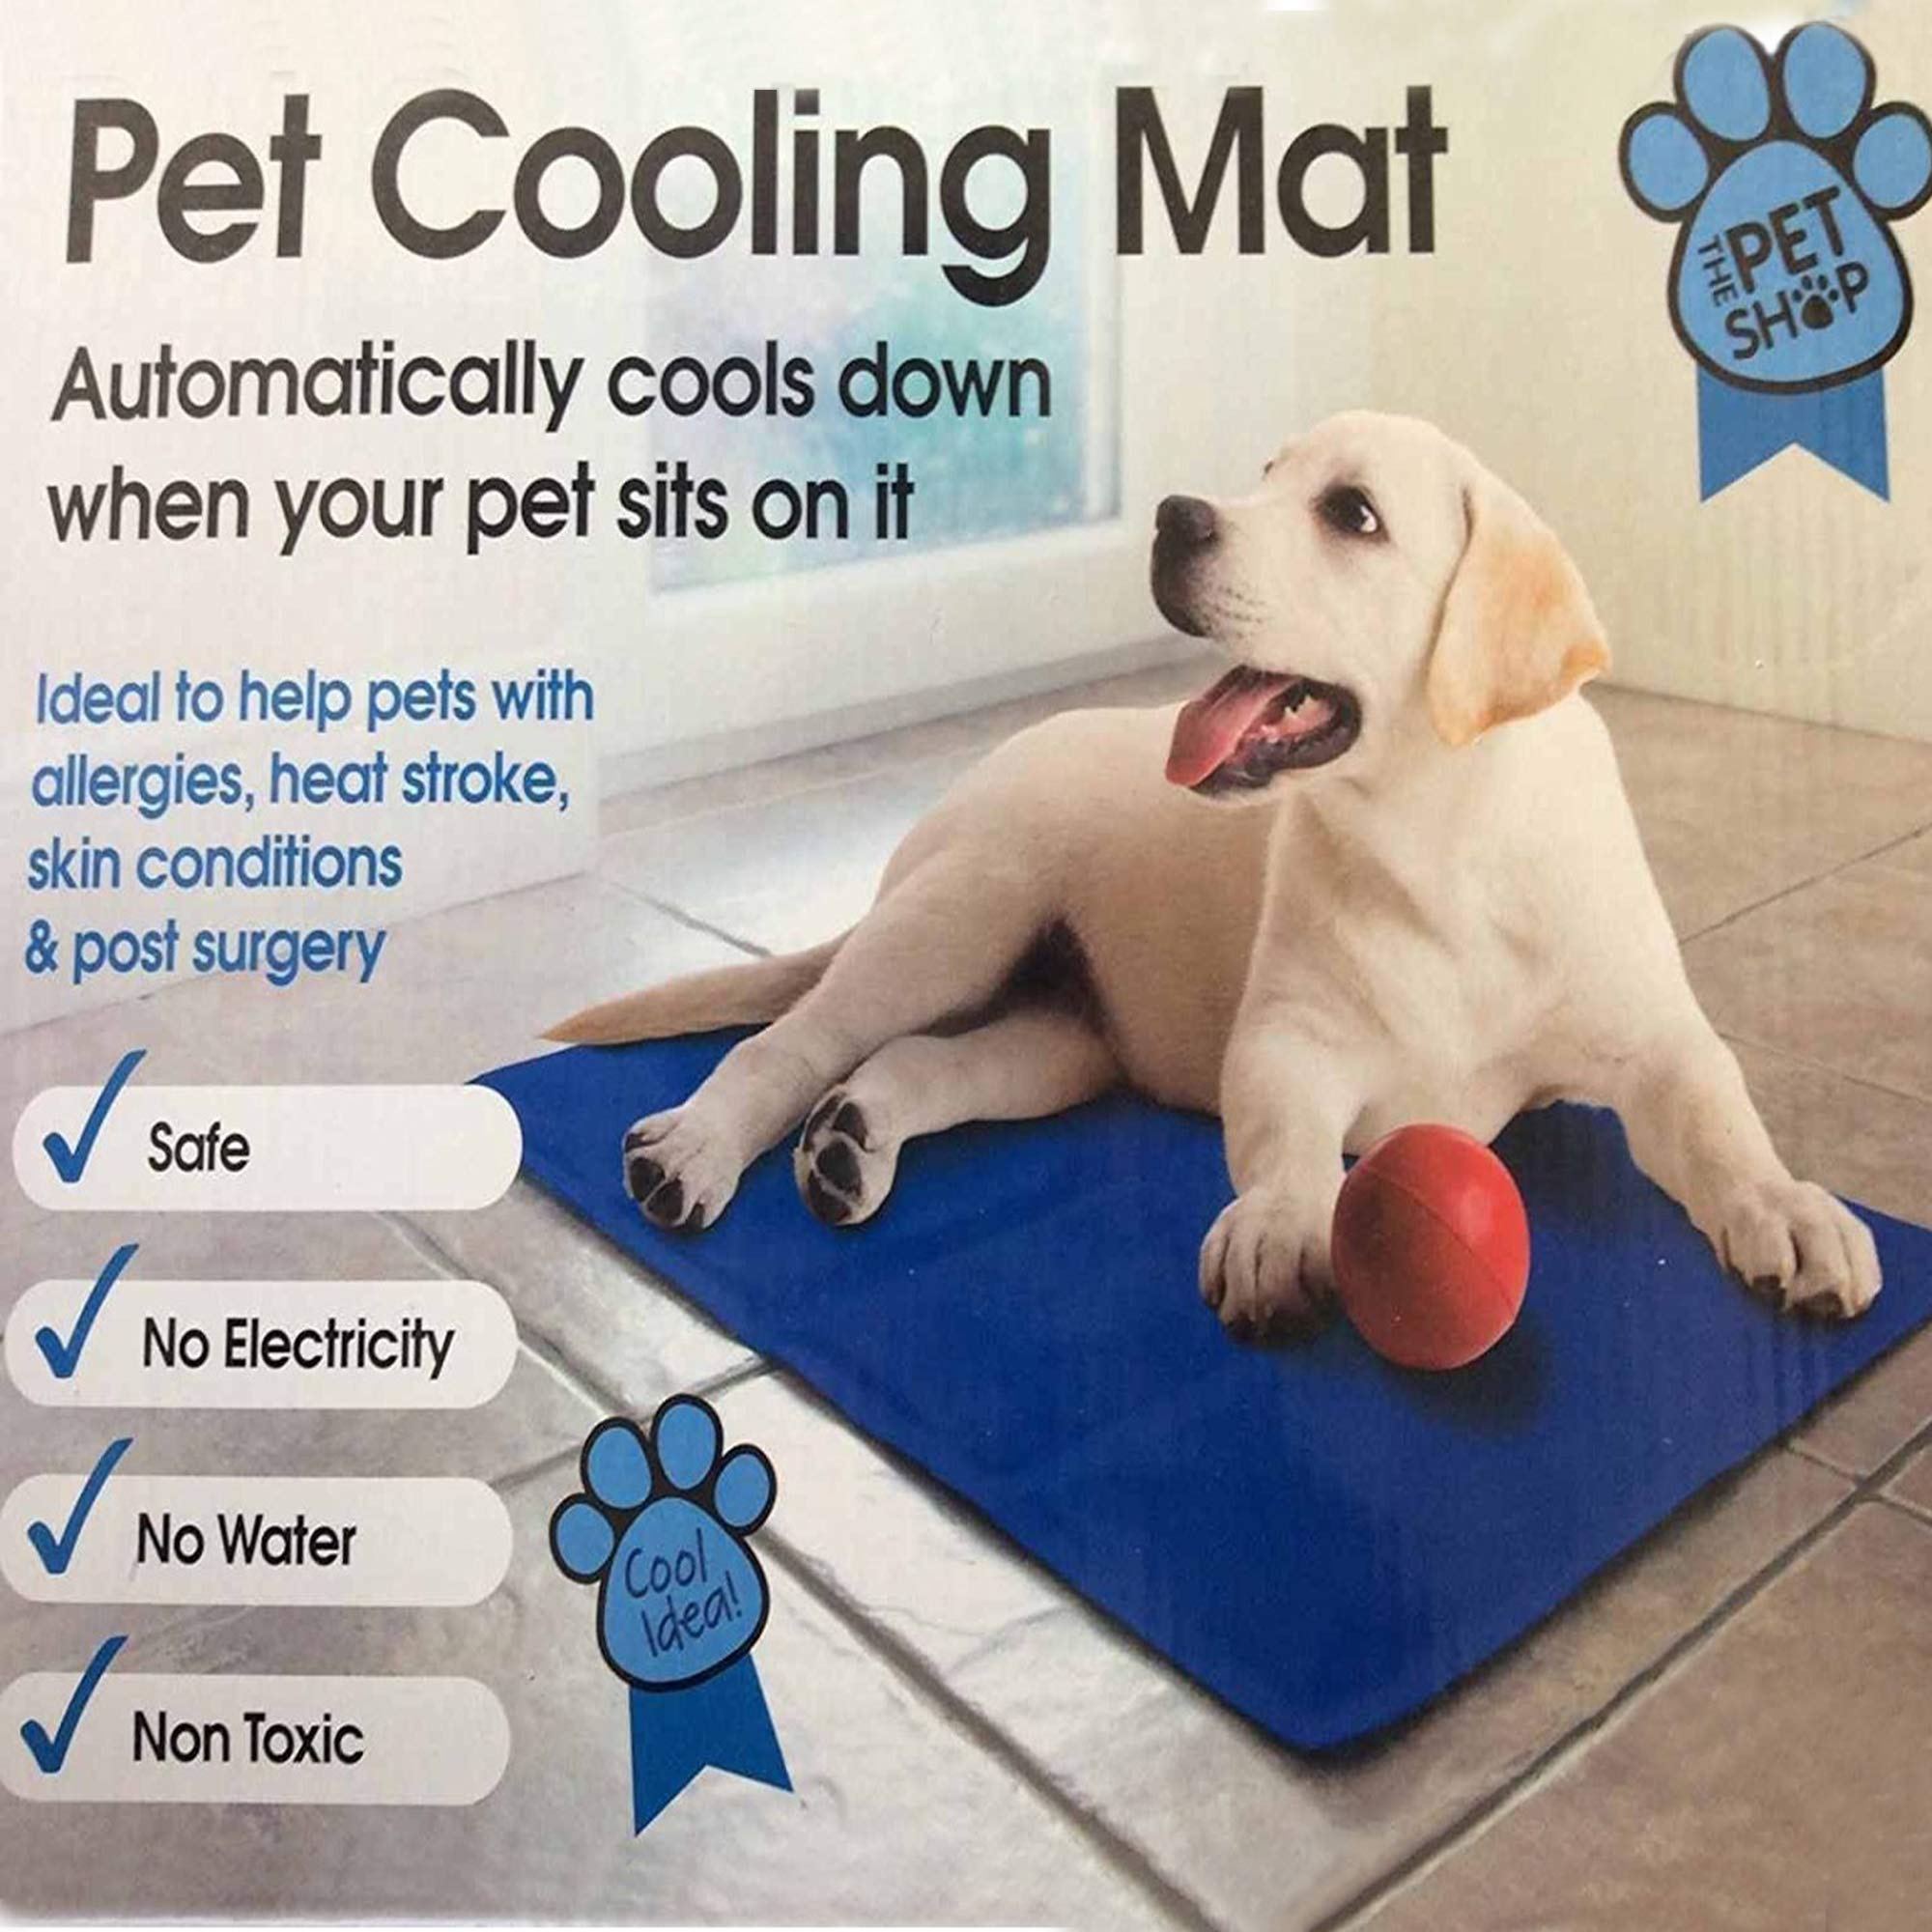 GOODONE Pet Cooling mat,2019 New Self Cooling Pad Fast Heat Dissipation Continuously Cool for Kennels, Crates and Beds